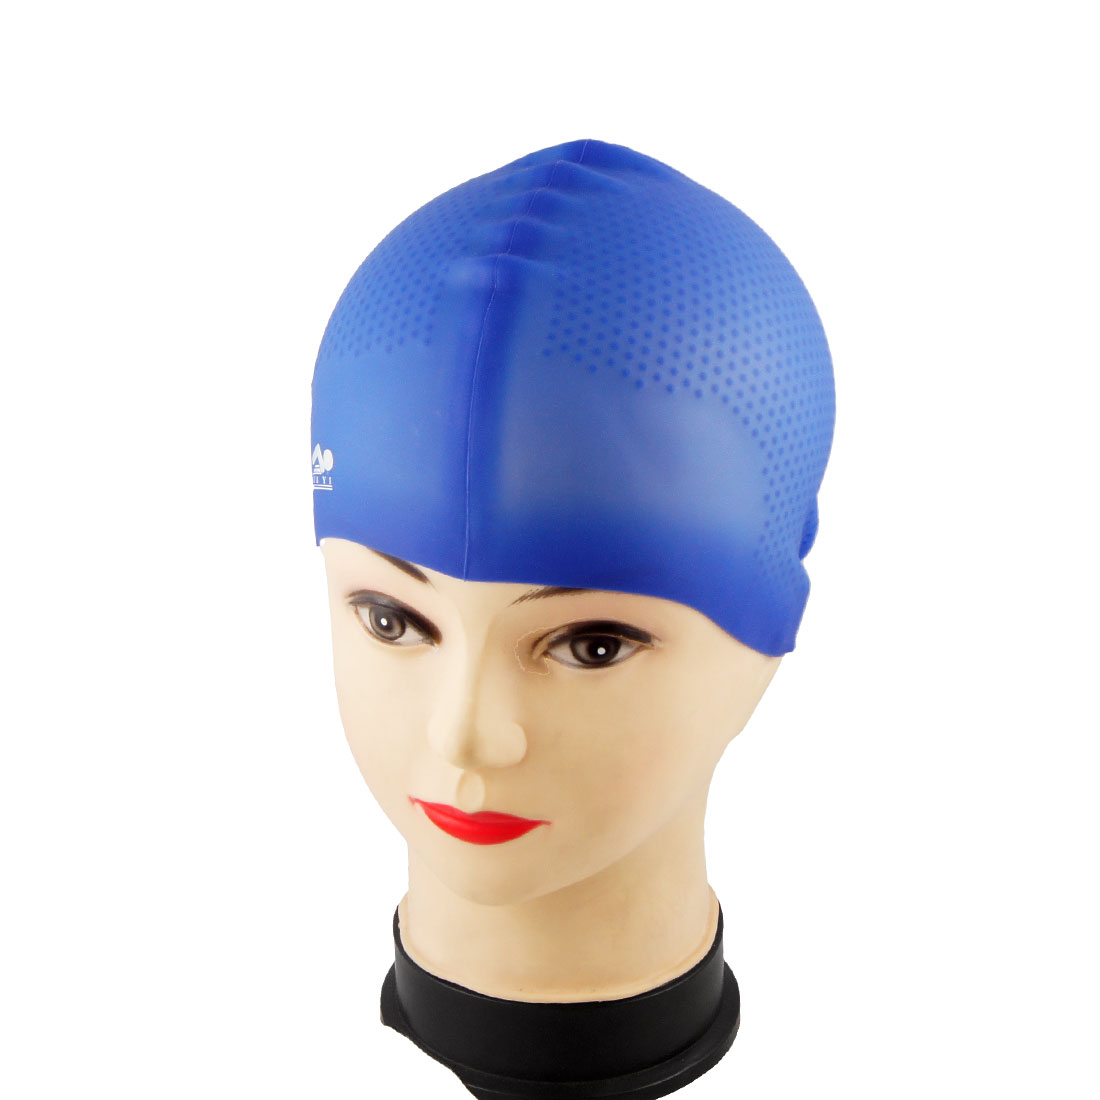 Soft Flexible Silicone Nonslip Sports Blue Swimming Cap for Adult